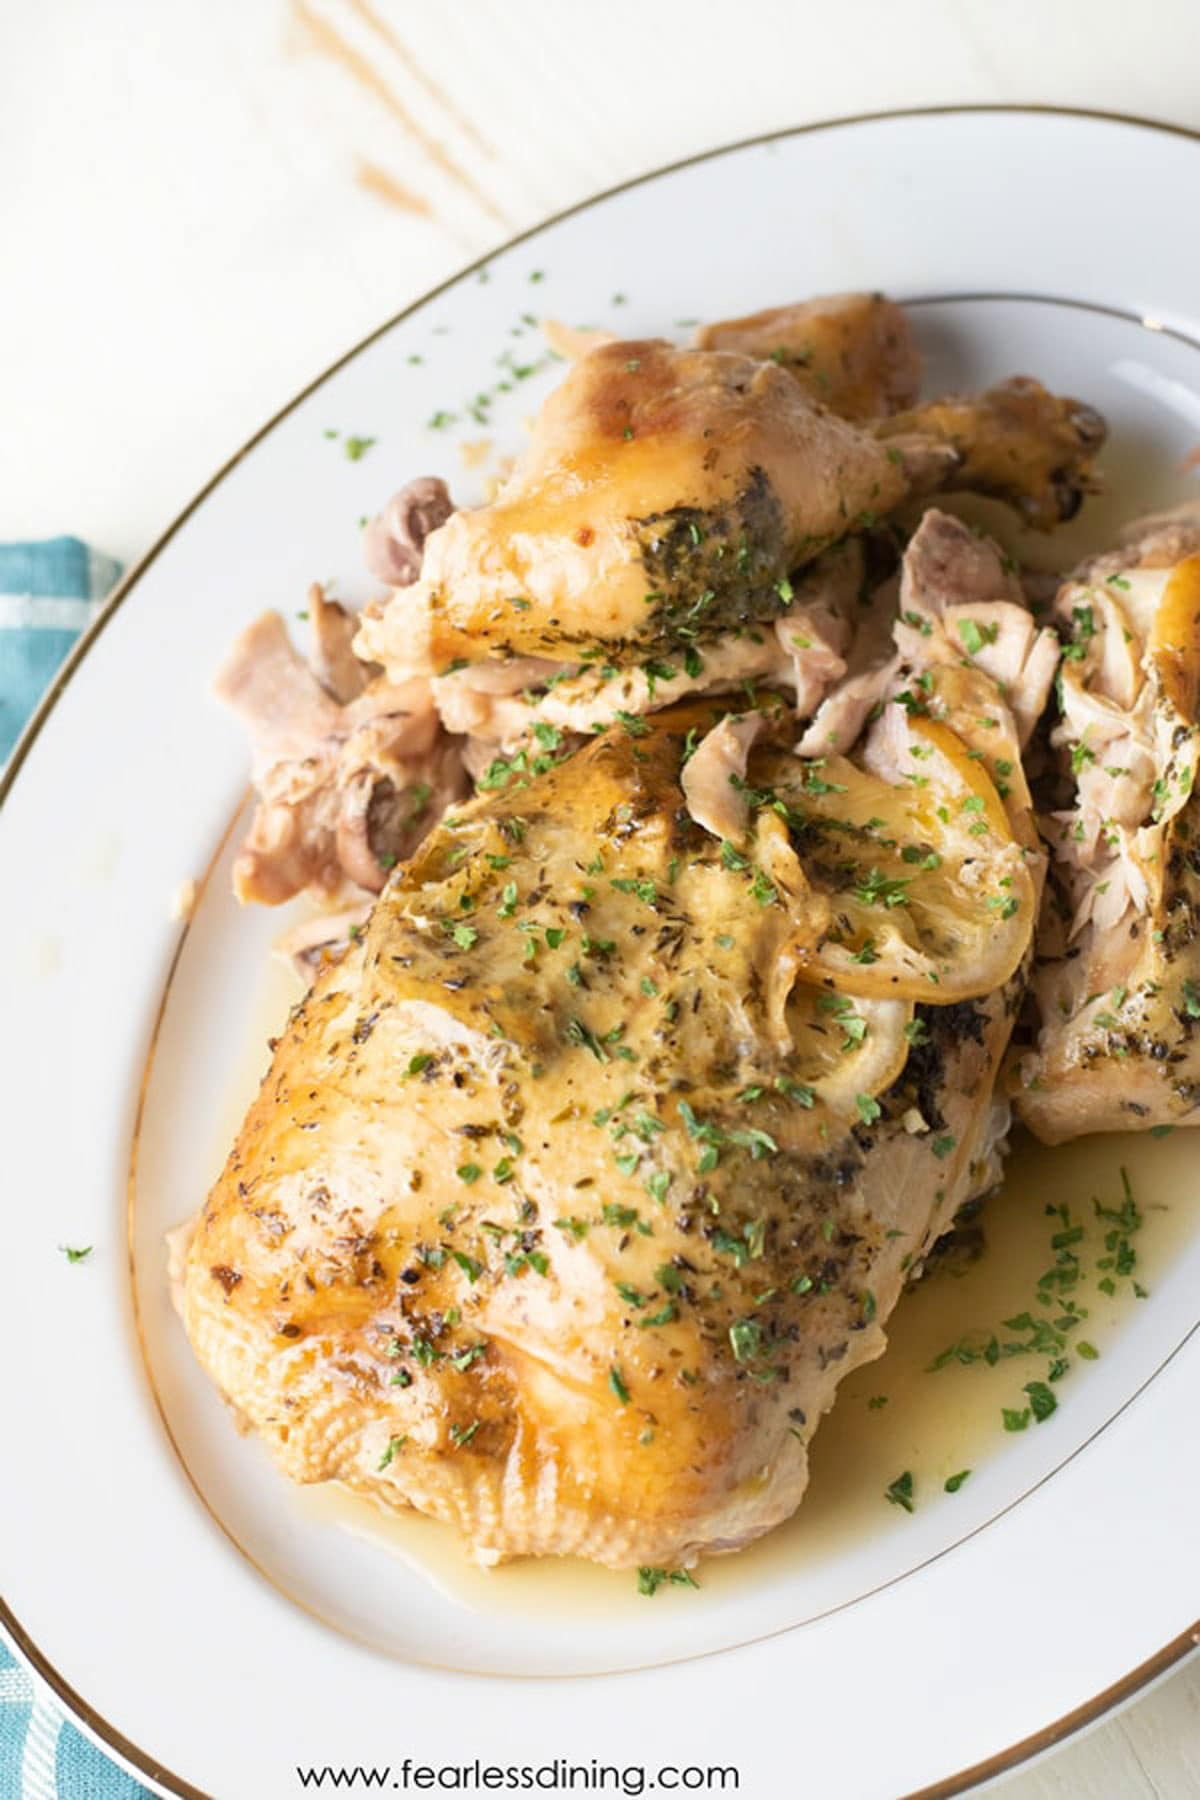 a platter with a whole slow cooked lemon chicken